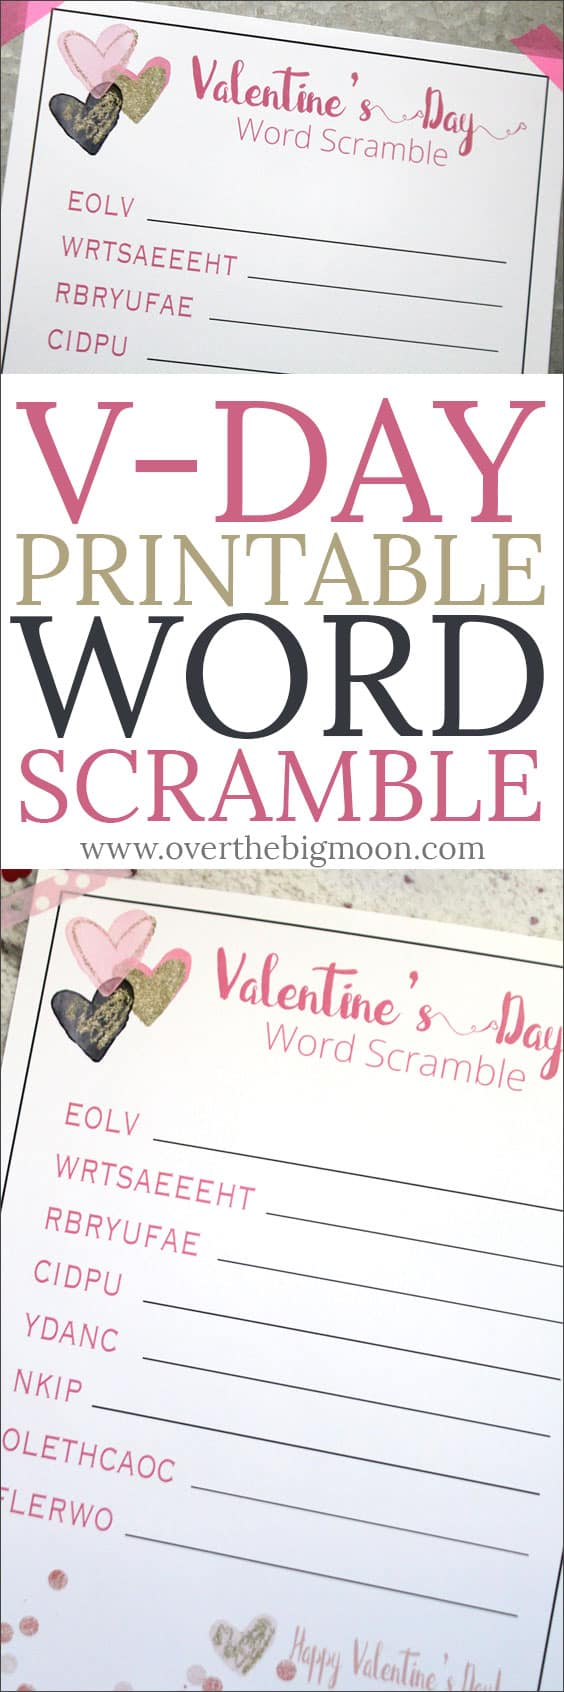 Valentine's Day Printable Word Scramble for kids! From overthebigmoon.com!